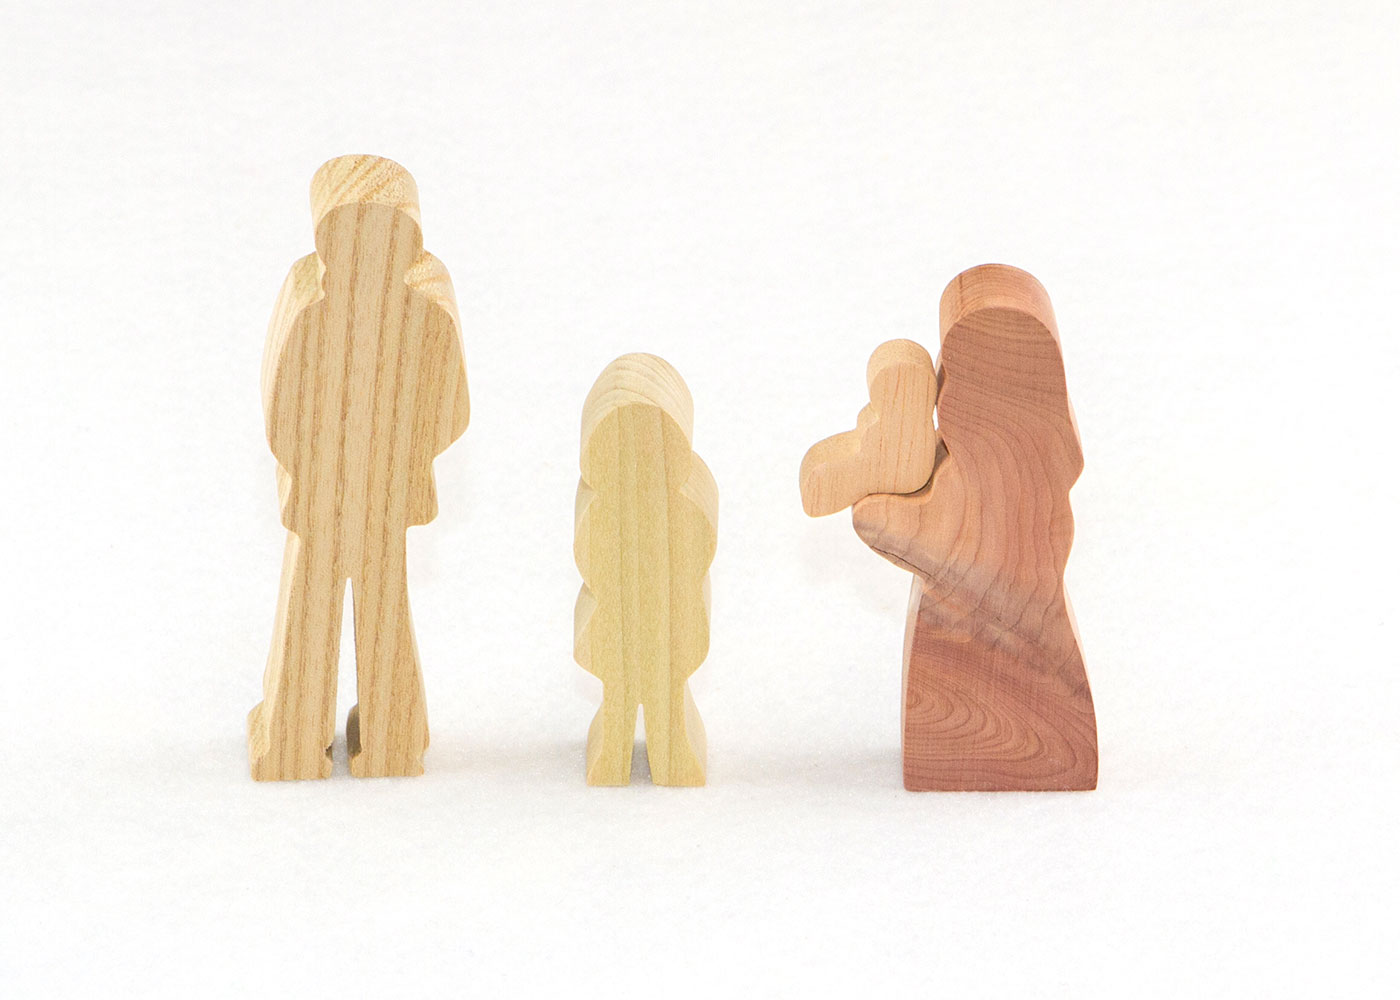 4 Multi-Wood Figures for Sunday School Lesson